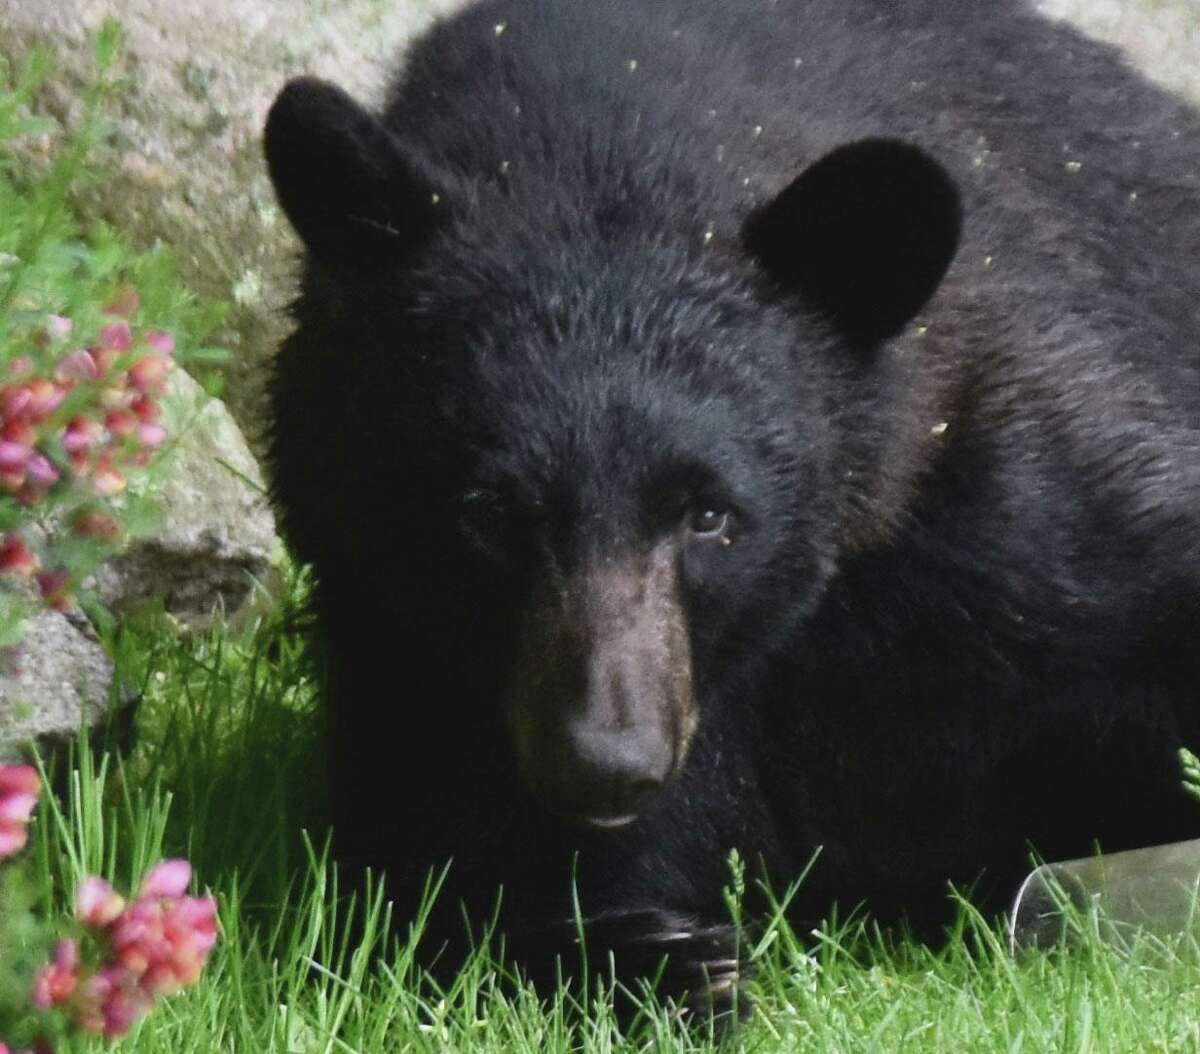 A file photo of a bear visiting a Wilton, Conn., backyard, taken in May 2019. Police in Westport, Conn., said there were recent sightings in the northern section of town on May 31, 2021.